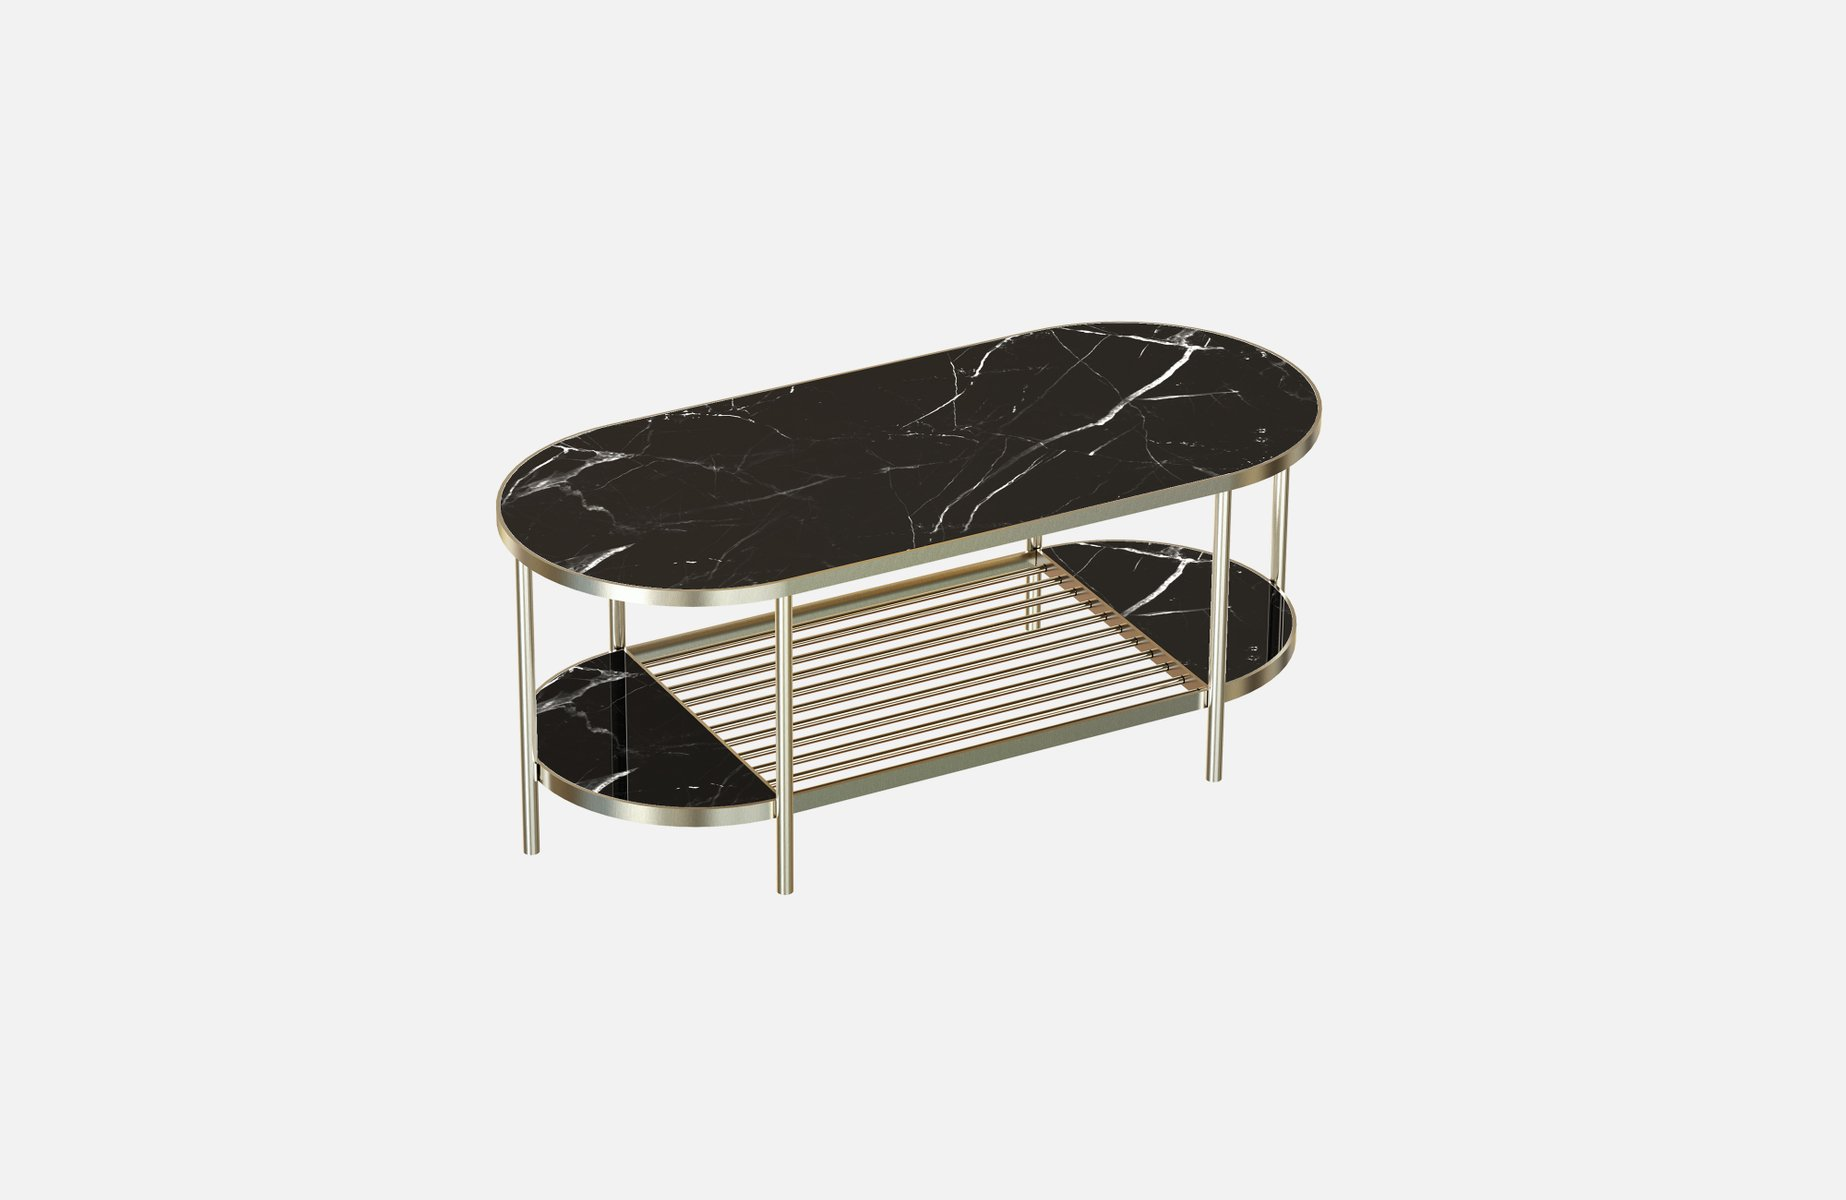 TOUCHÉ Brass-Plated Coffee Table with Black Marble Top by Alex Baser f...